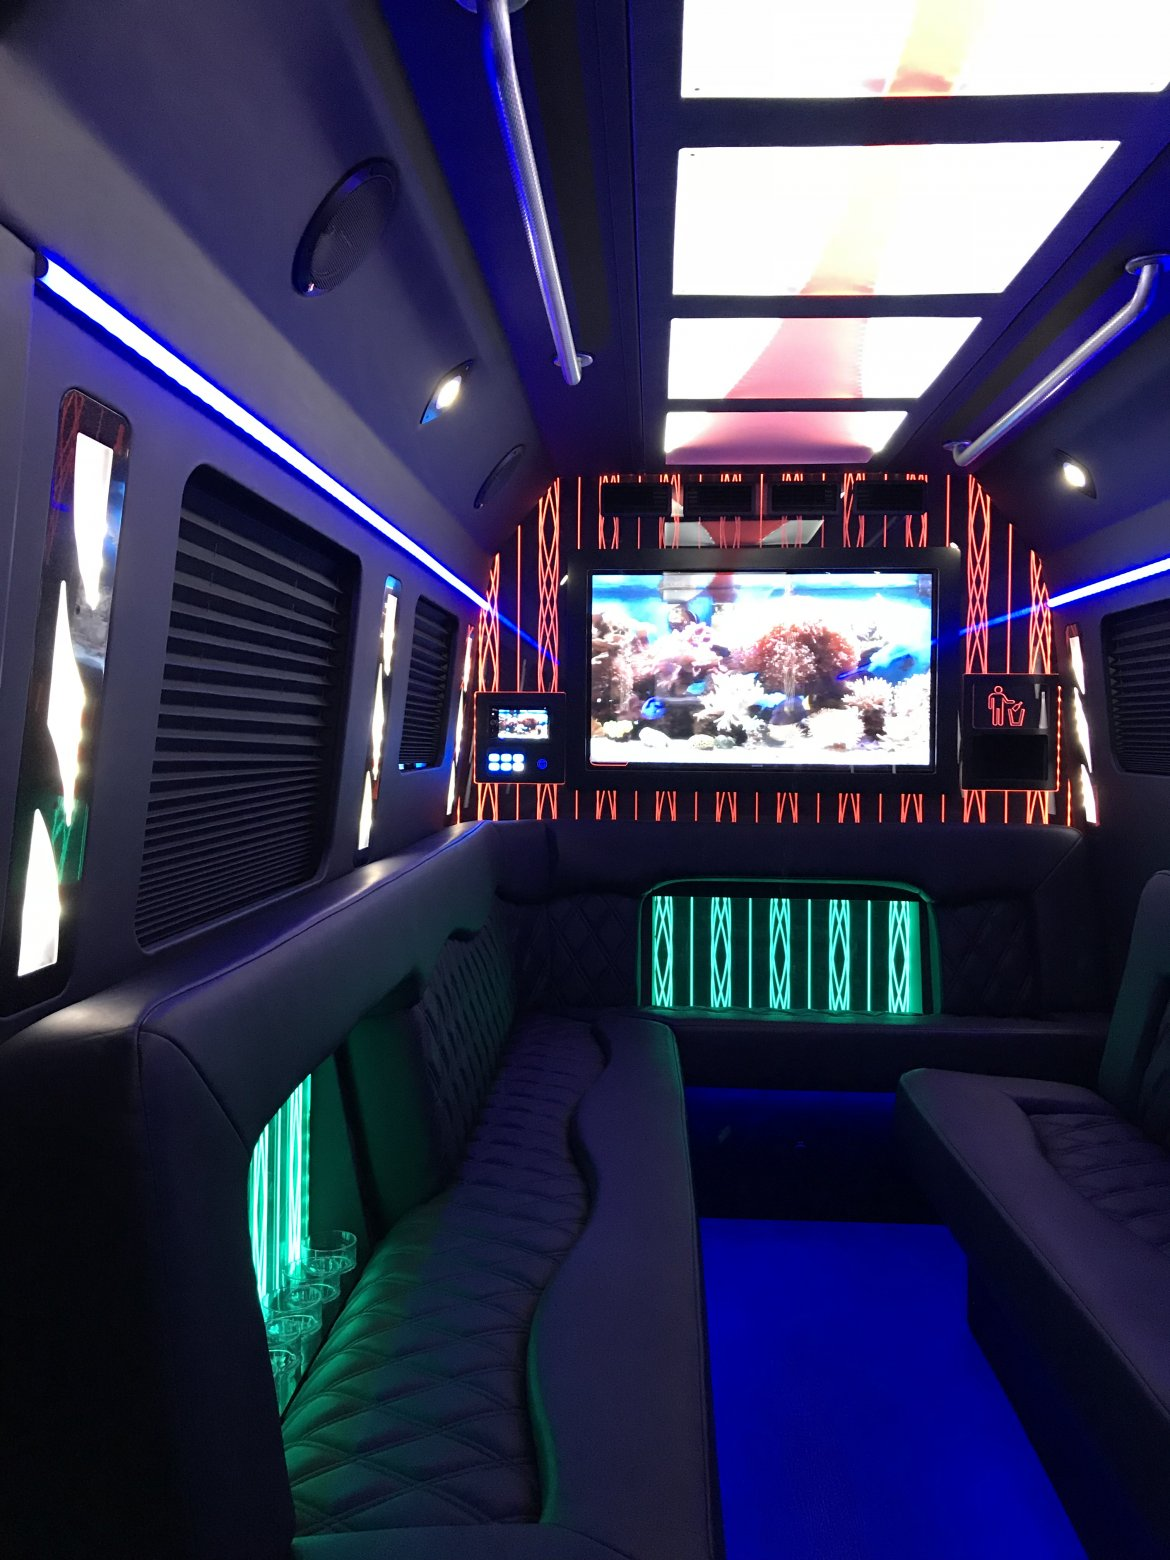 Photo of Sprinter for sale: 2017 Mercedes-Benz 3500 by LGE Coachworks